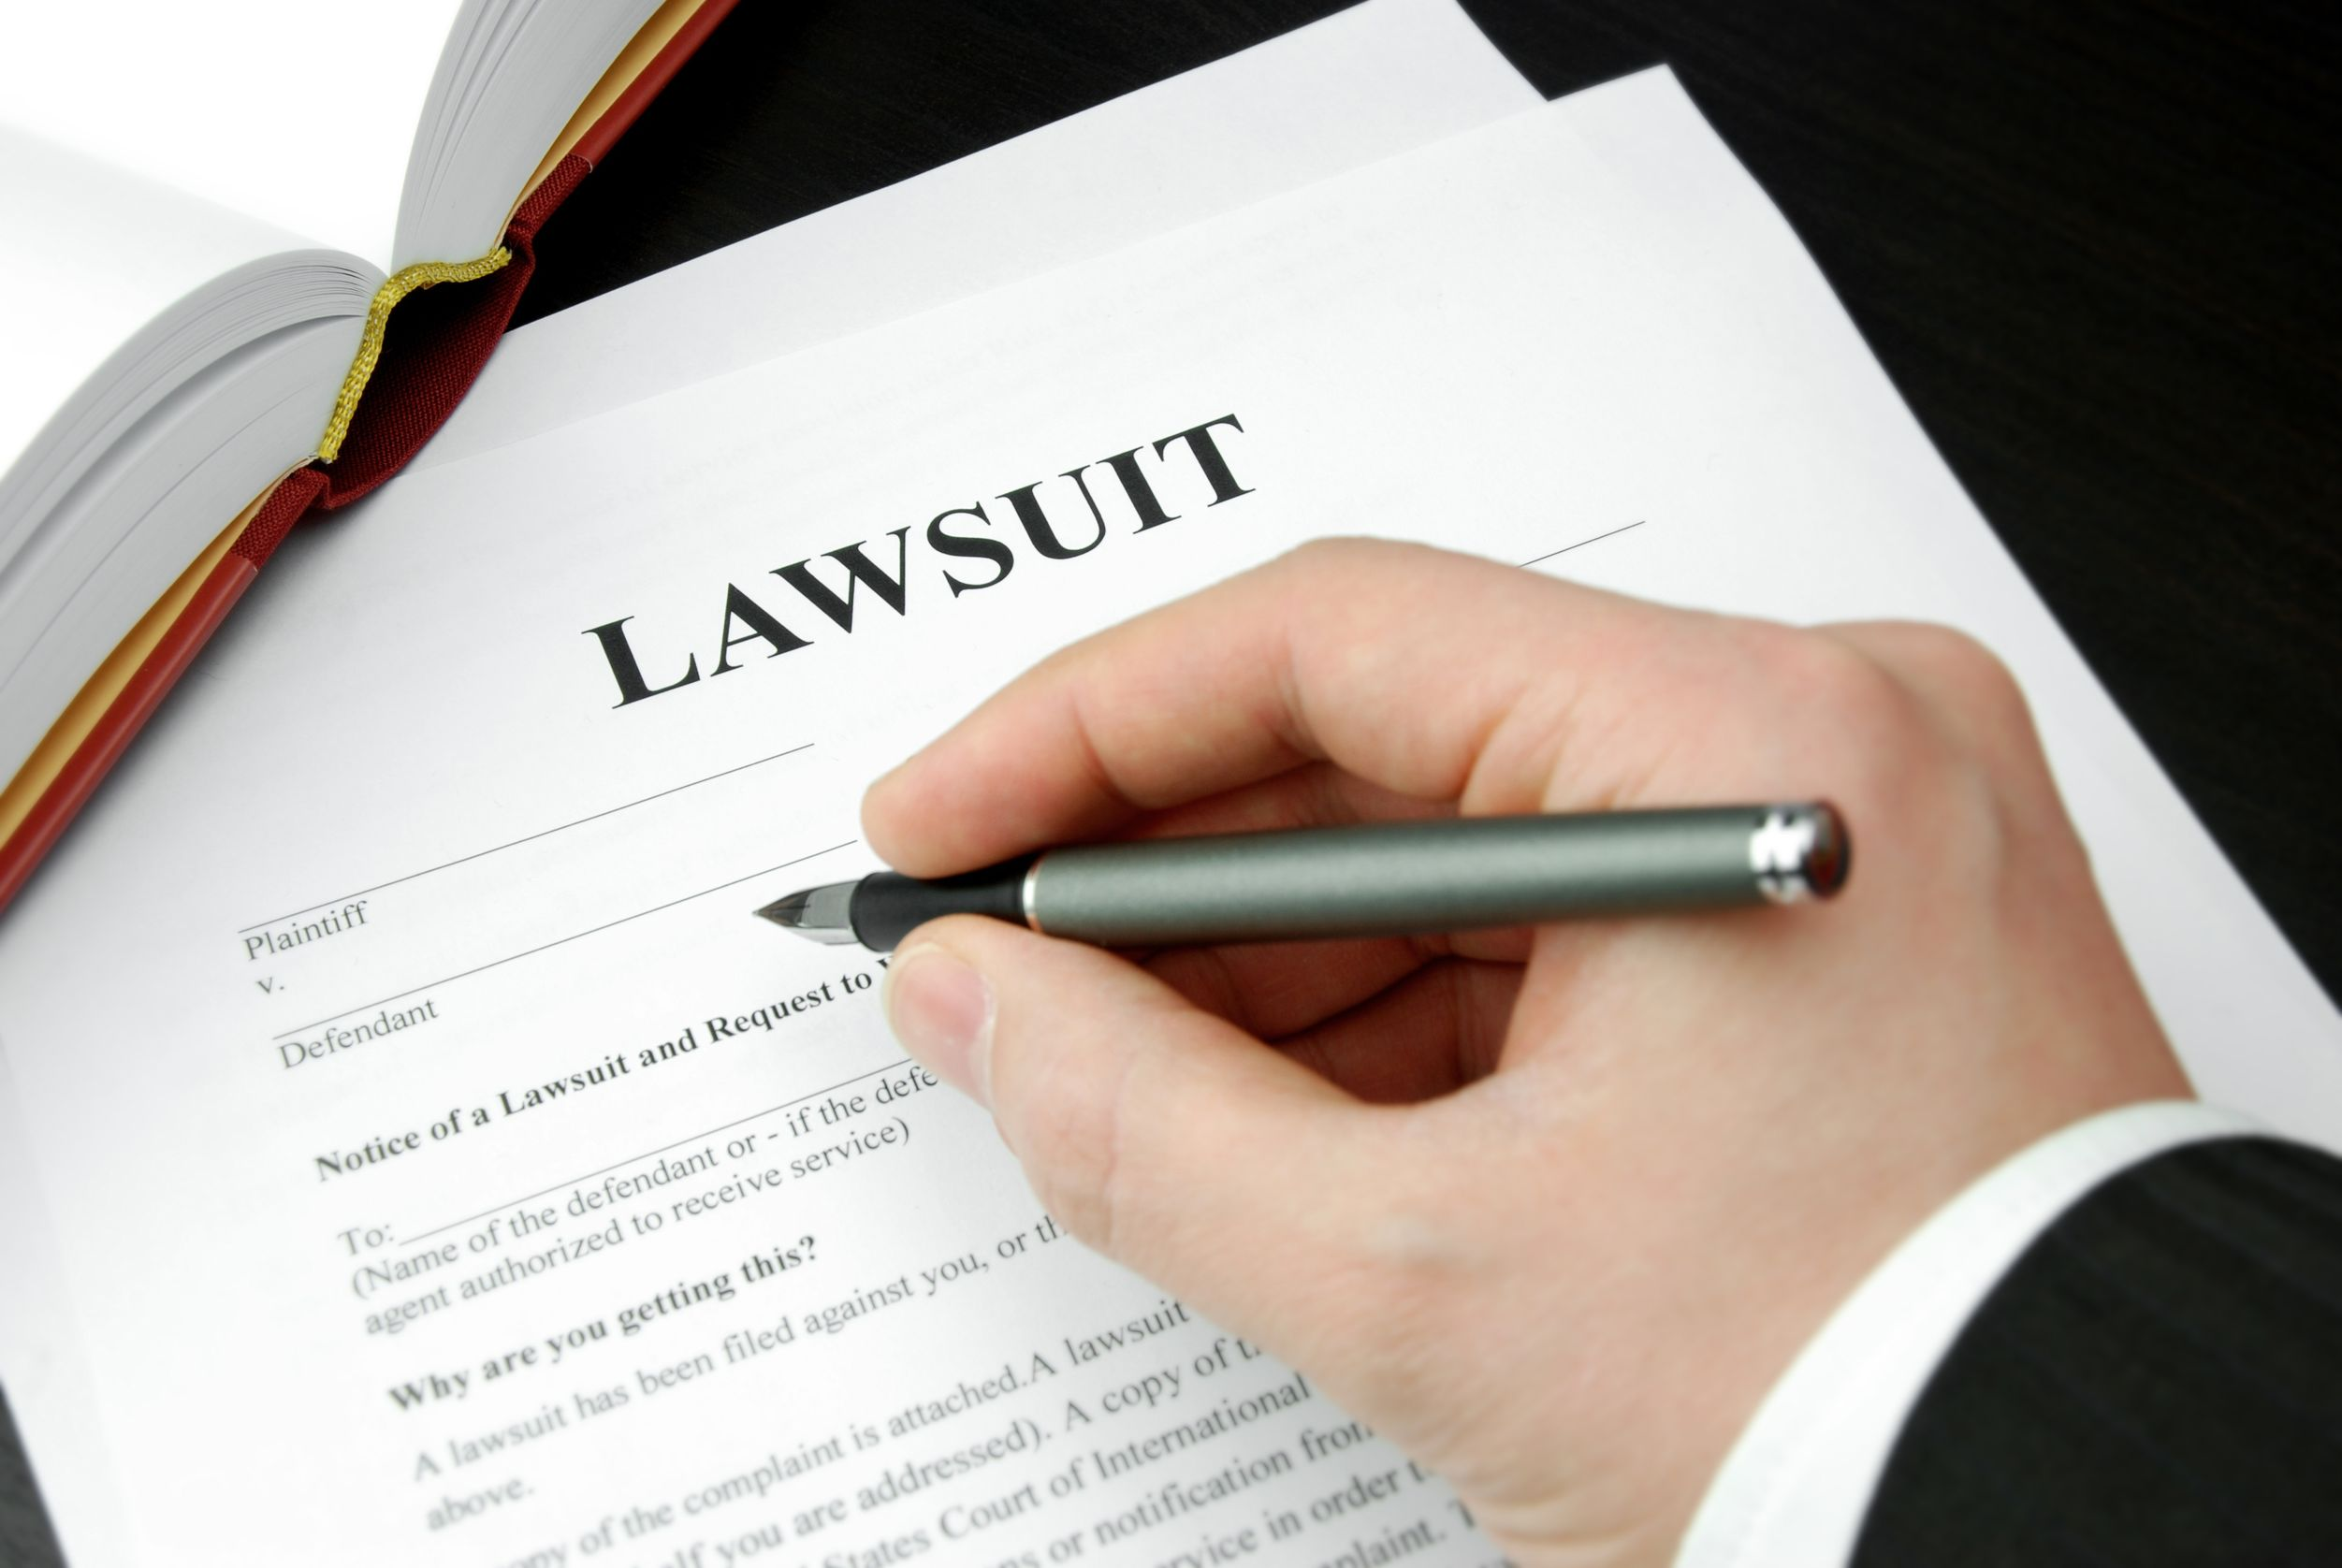 lawsuit, background checking, employee screening, HireRight, Blueline Services